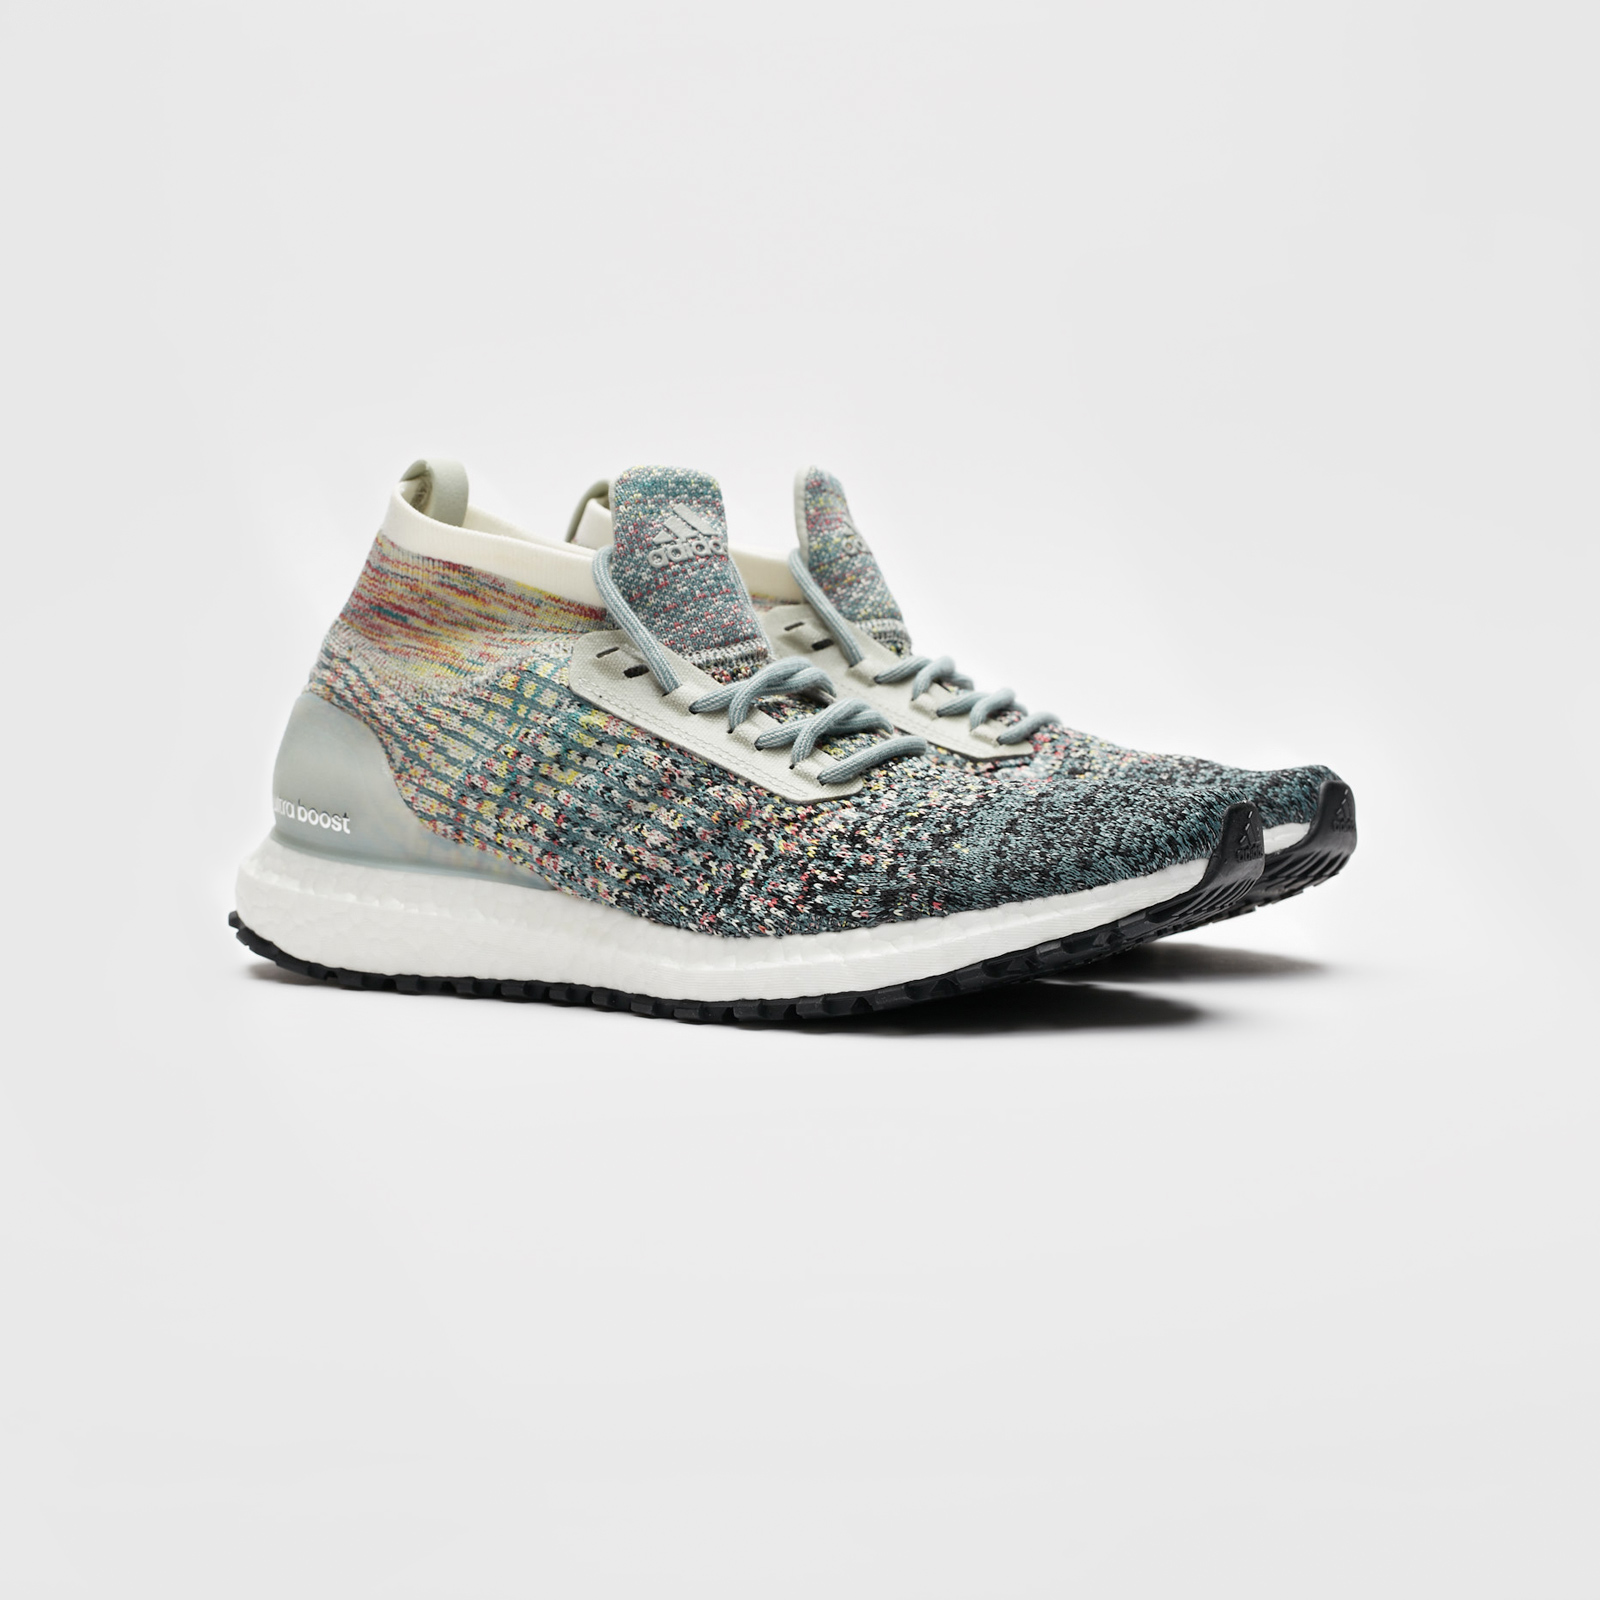 425a51419dd97 adidas all terrain ultra boost ltd off 55% - www.letertre-geometres.com